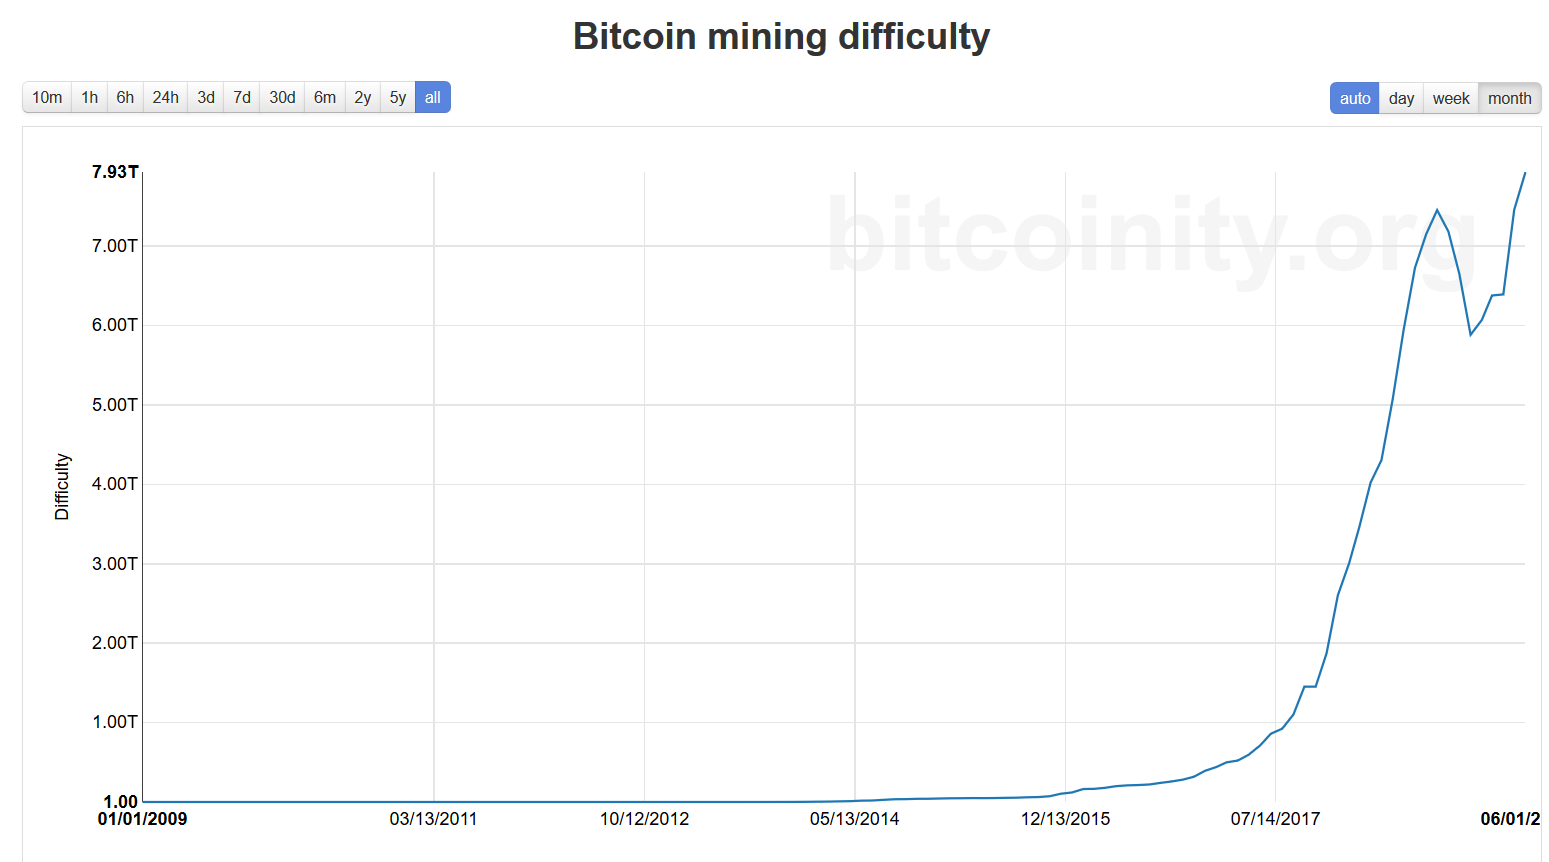 All-time chart of Bitcoin mining difficulty